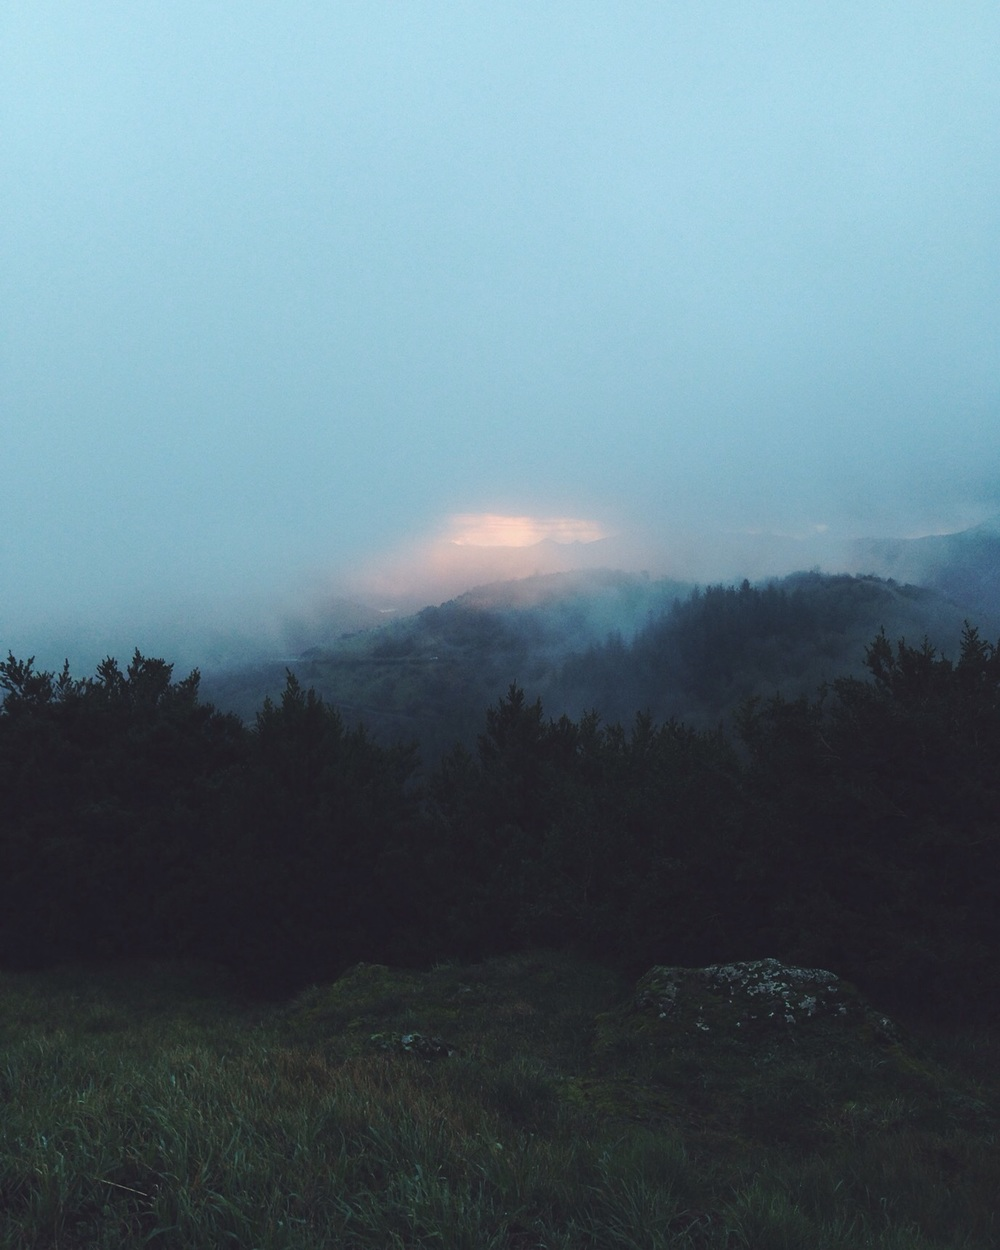 sunrise in foggy mountains